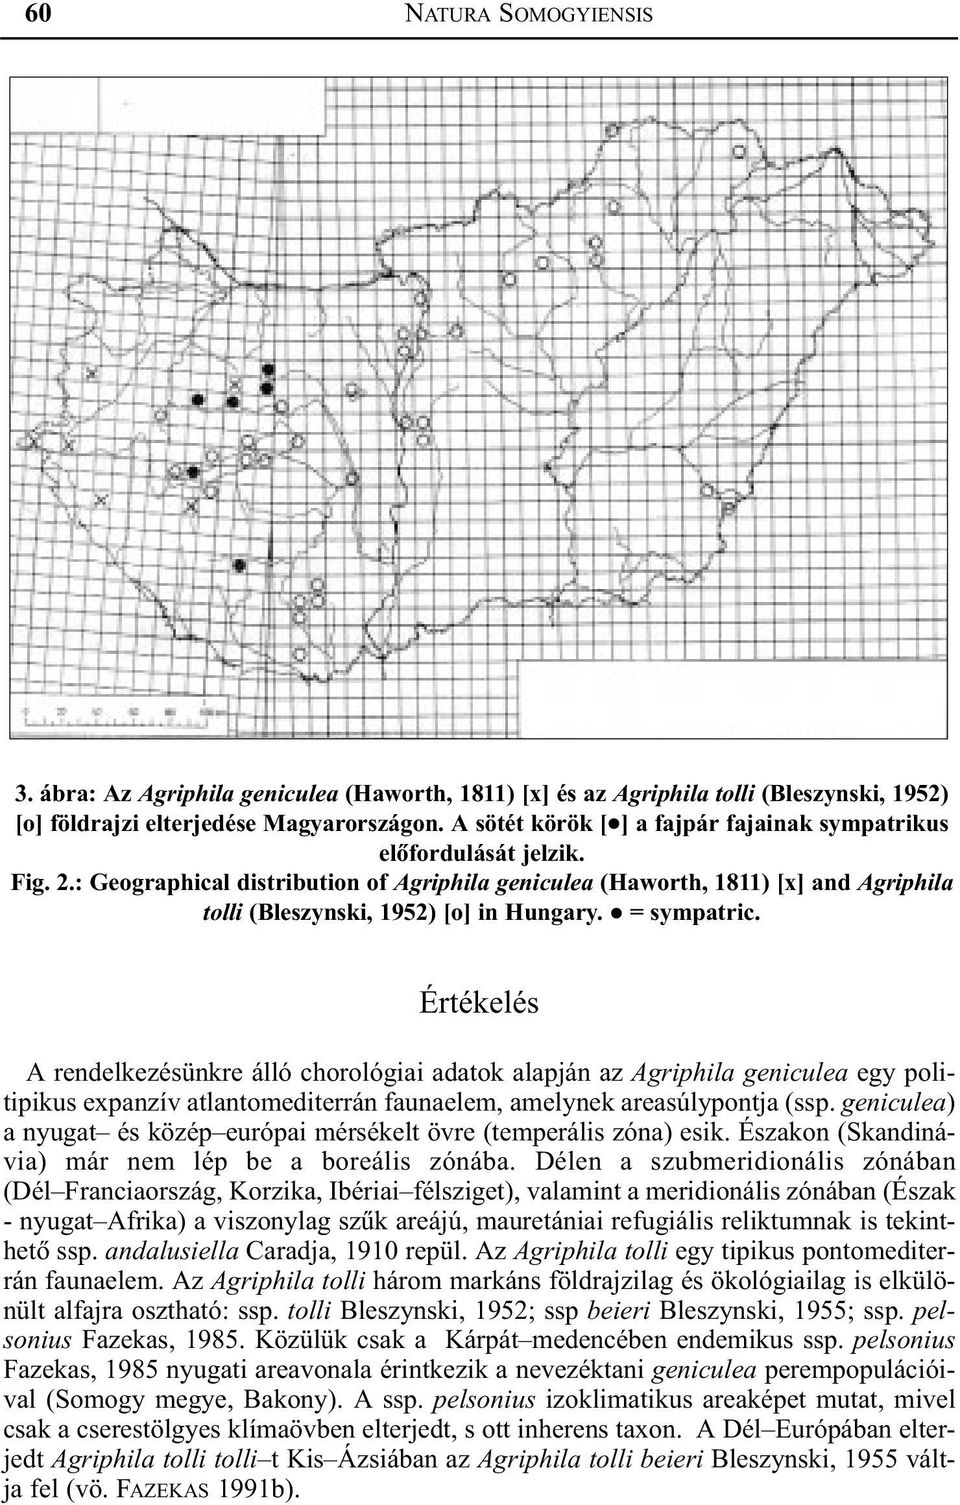 : Geographical distribution of Agriphila geniculea (Haworth, 1811) [x] and Agriphila tolli (Bleszynski, 1952) [o] in Hungary. = sympatric.